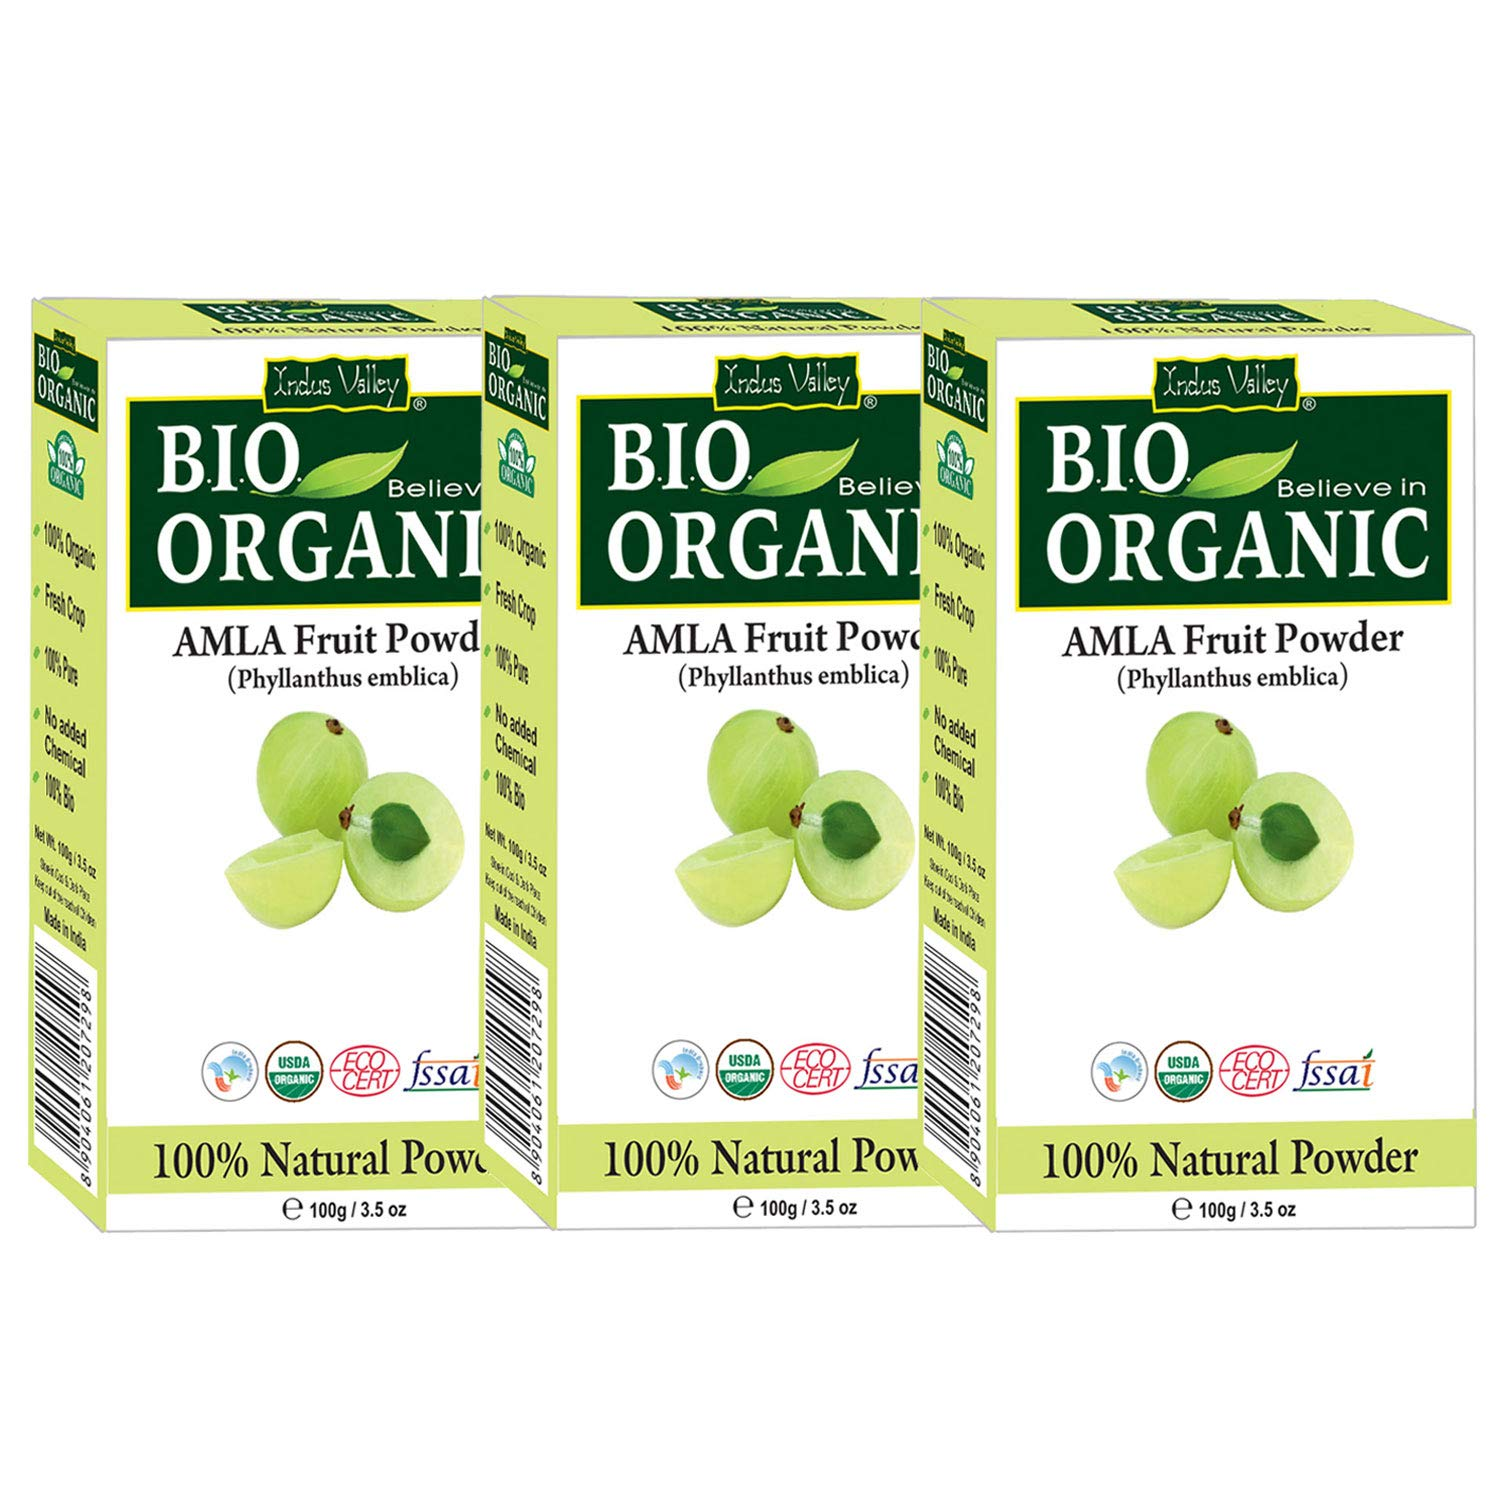 Indus Valley 100% Organic Amla Powder Pure, Natural And Fresh For Healthy Hair and Skin (300Gm) product image